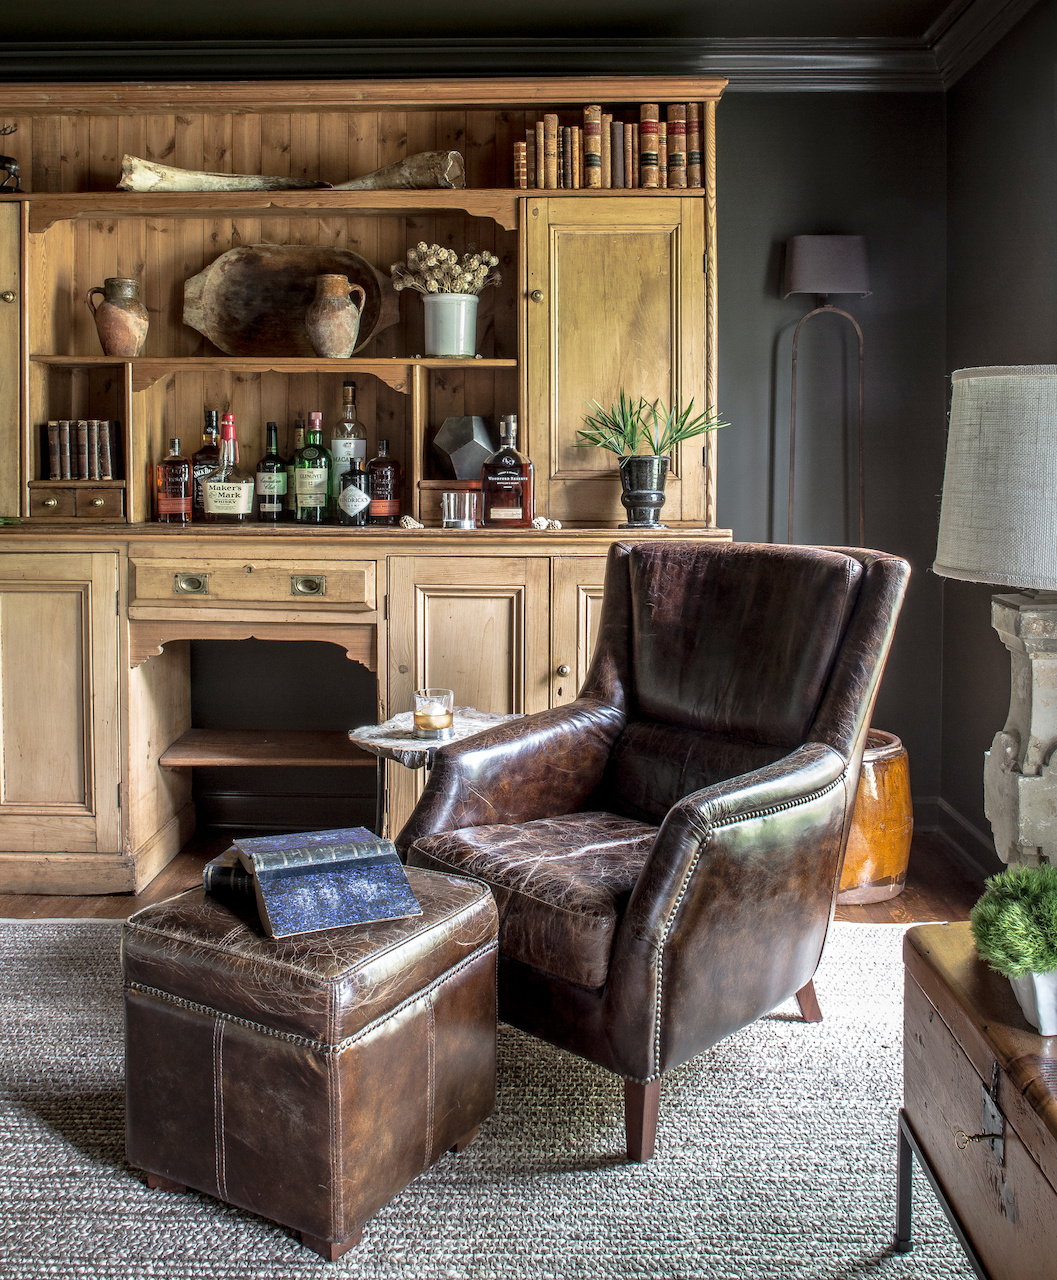 The dark walls and earthy hues enhance the timeless atmosphere of this library / sitting room.